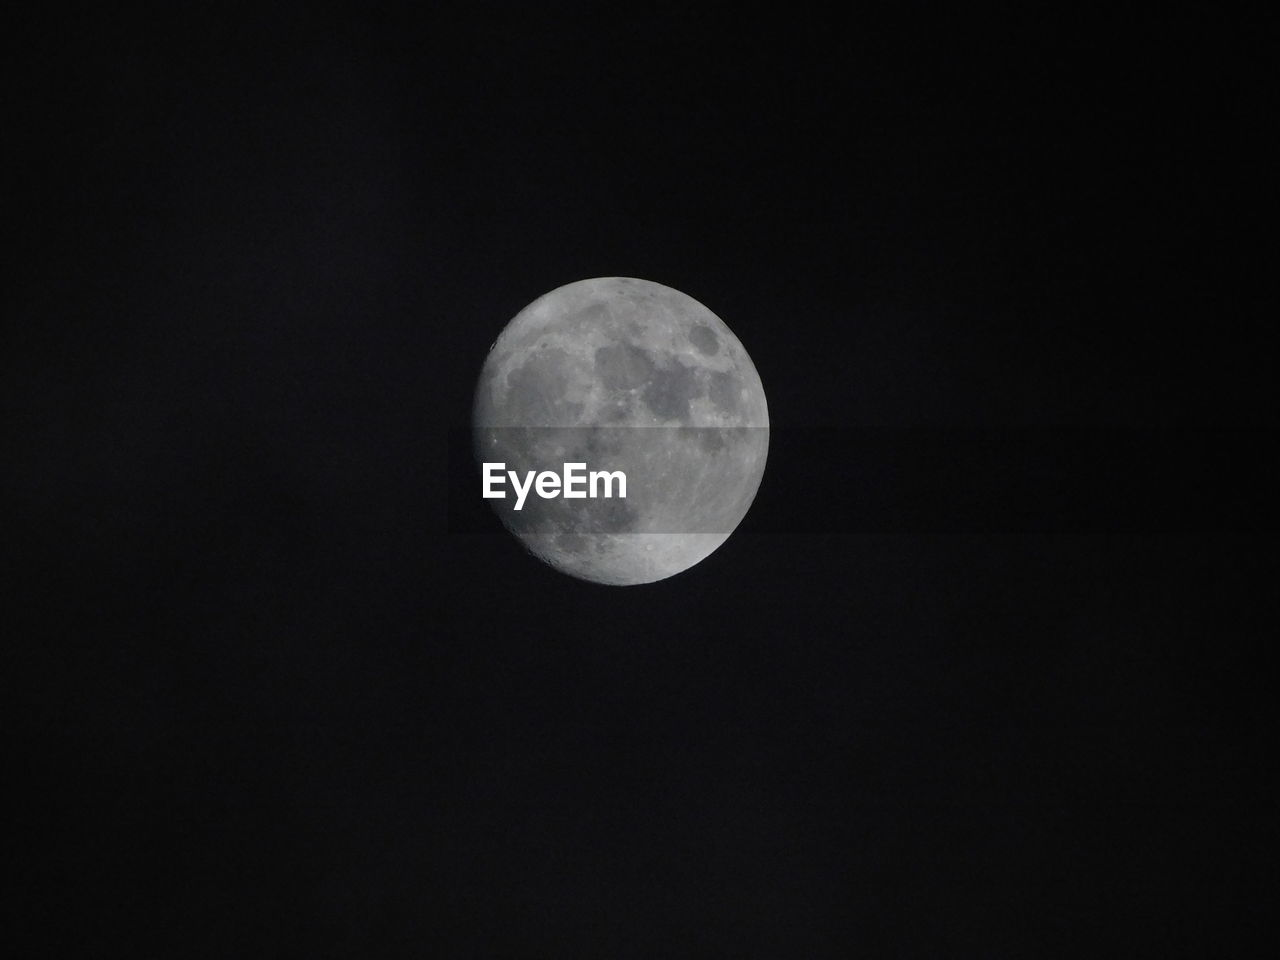 moon, astronomy, night, nature, moon surface, planetary moon, beauty in nature, low angle view, scenics, no people, tranquility, space exploration, clear sky, outdoors, sky, half moon, space